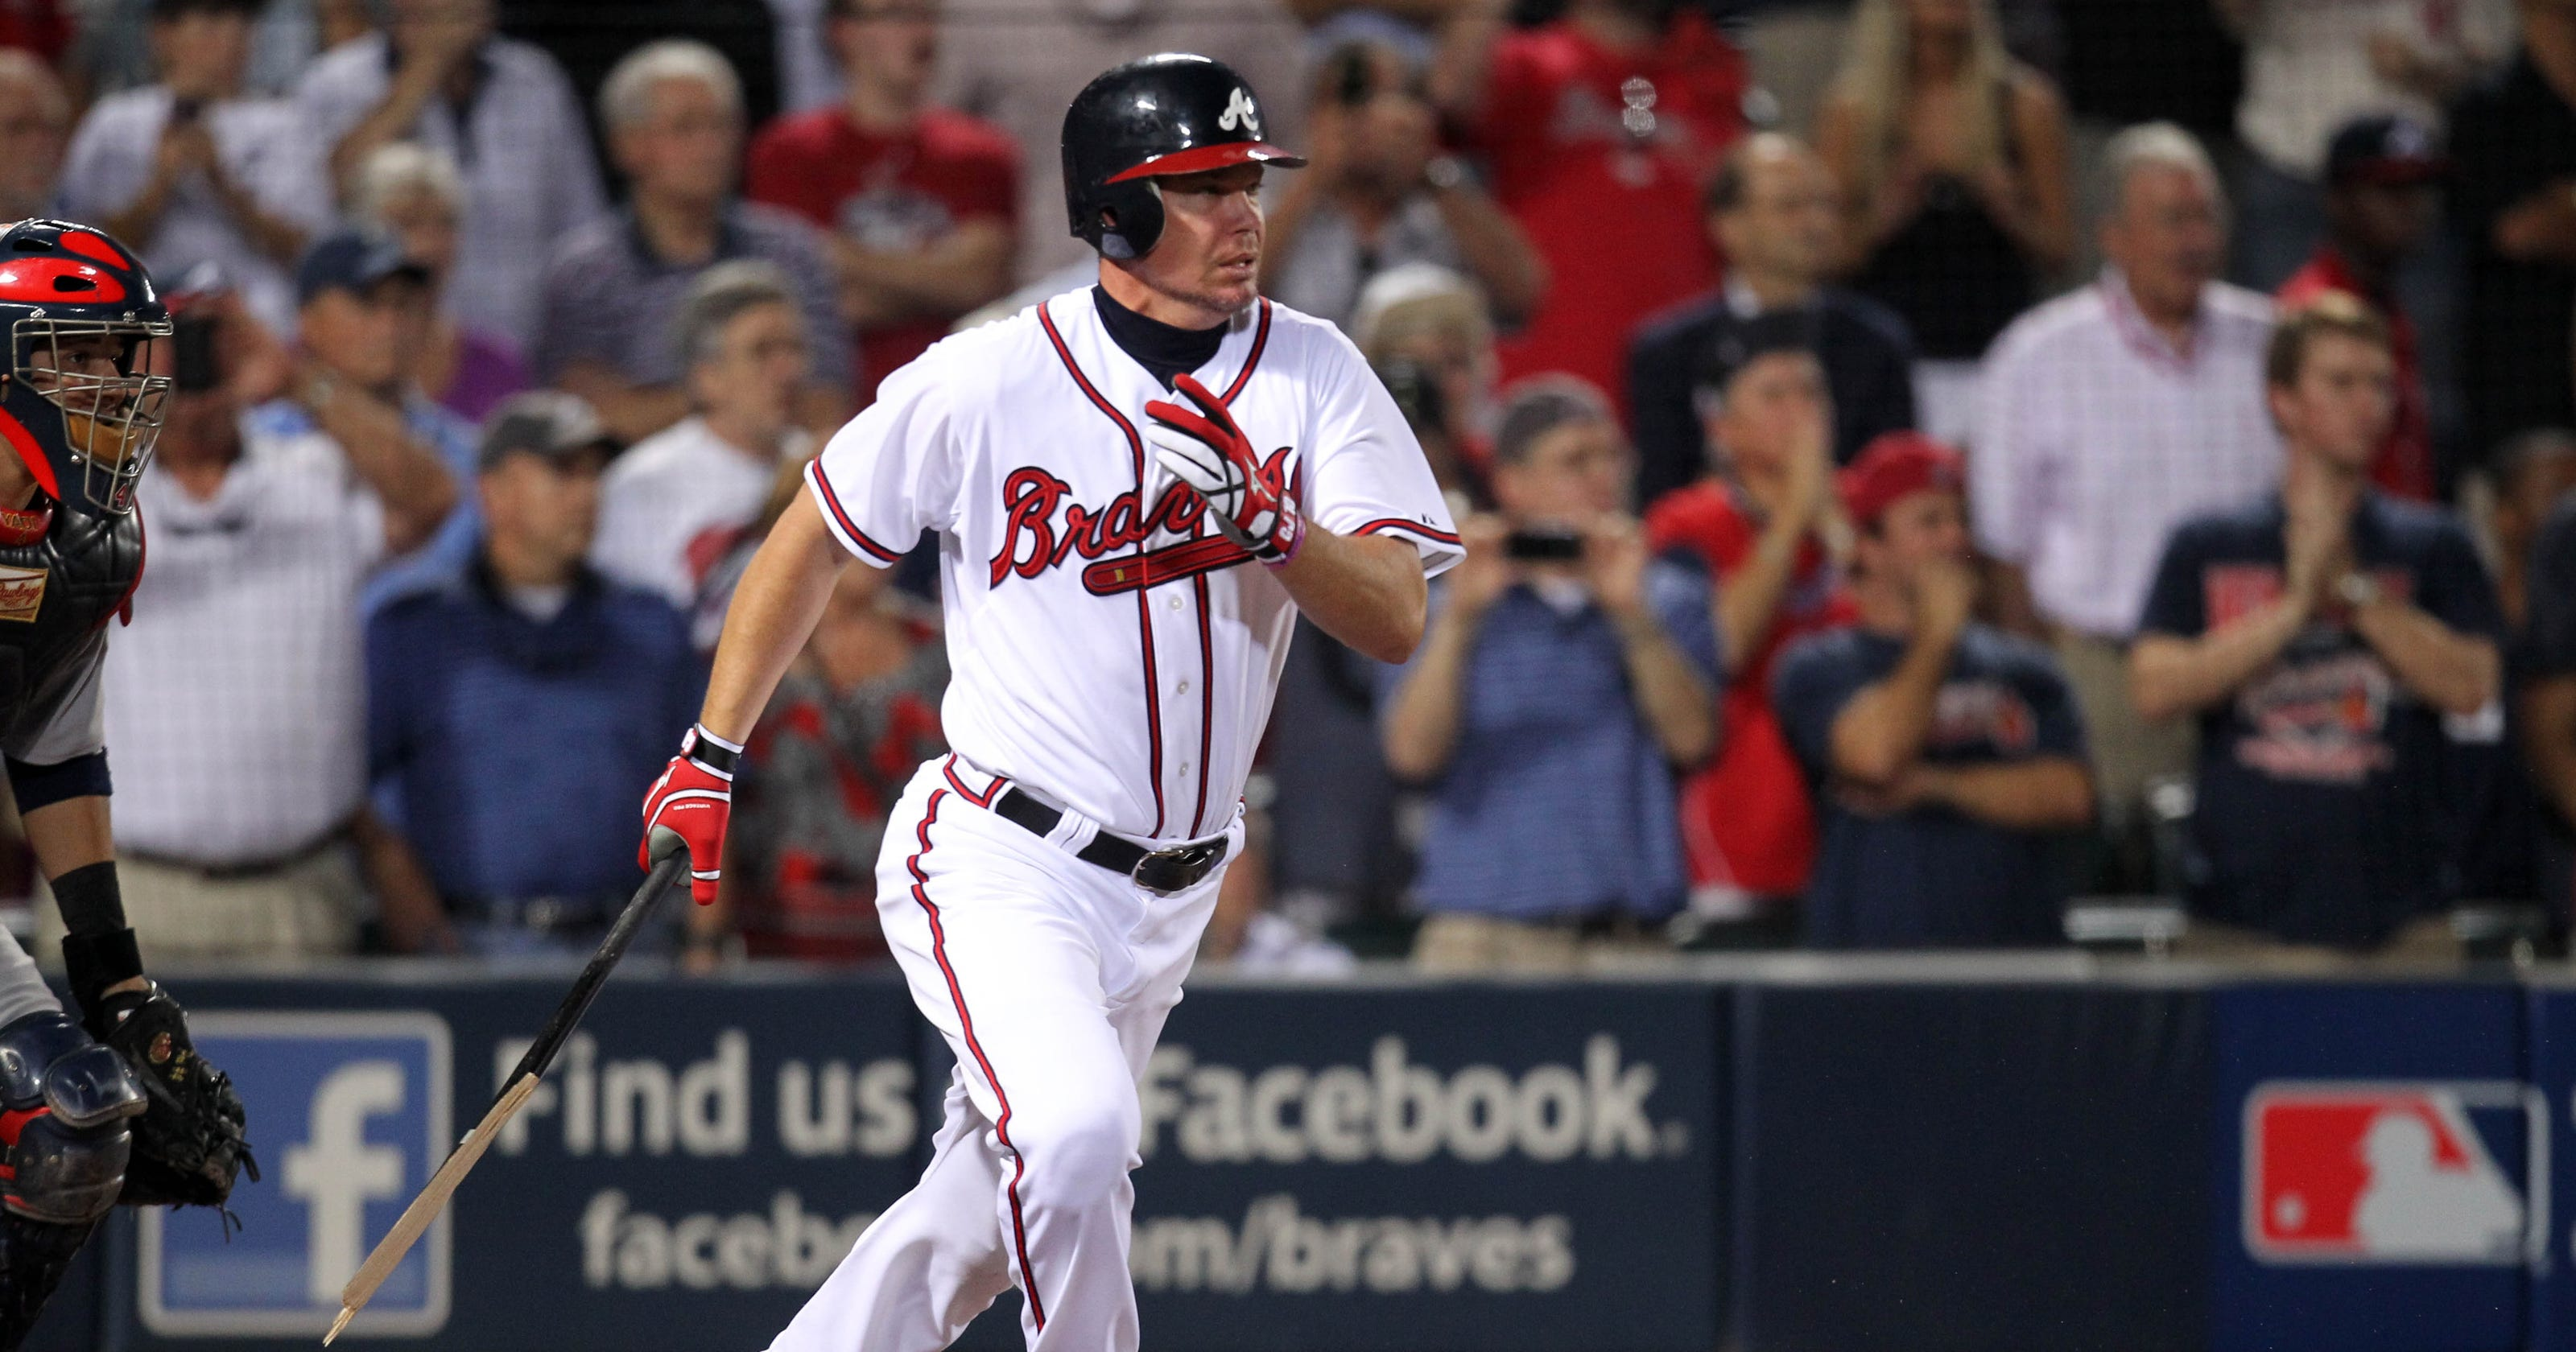 Chipper Jones Career Comes To A Sour End